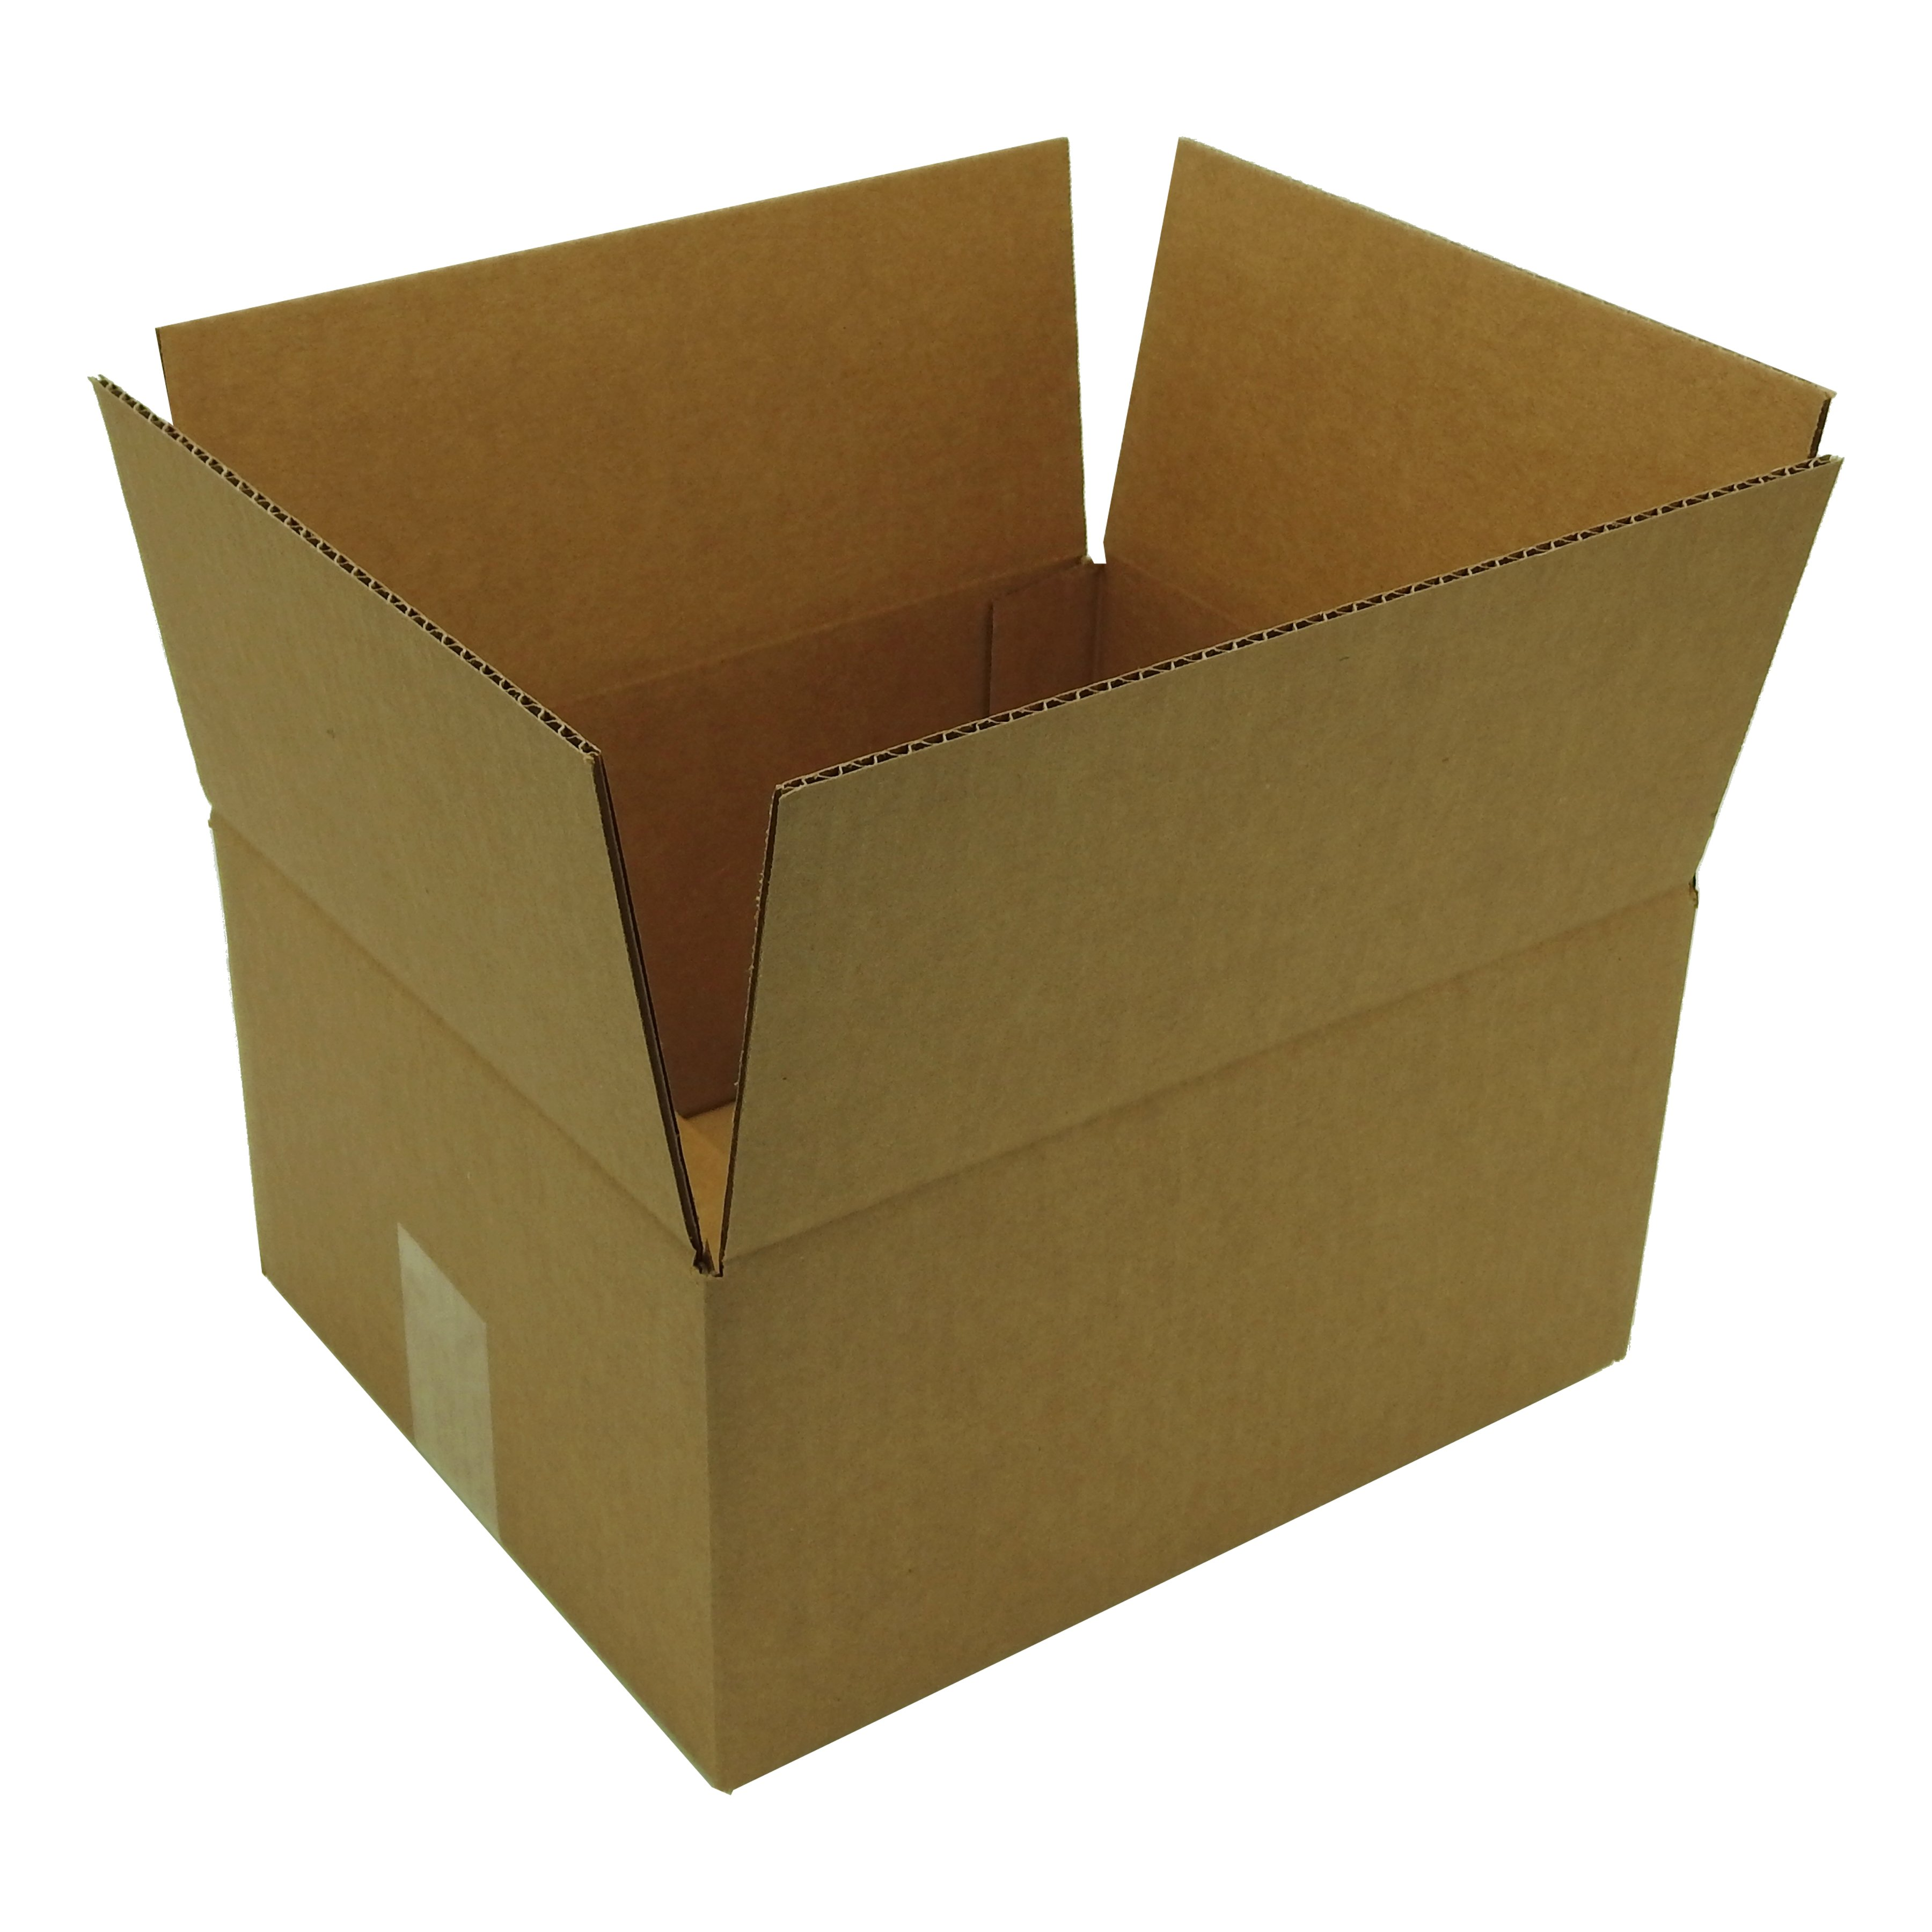 100 12x10x6 Corrugated Cardboard Shipping Mailing Packing Moving Boxes Box Carton